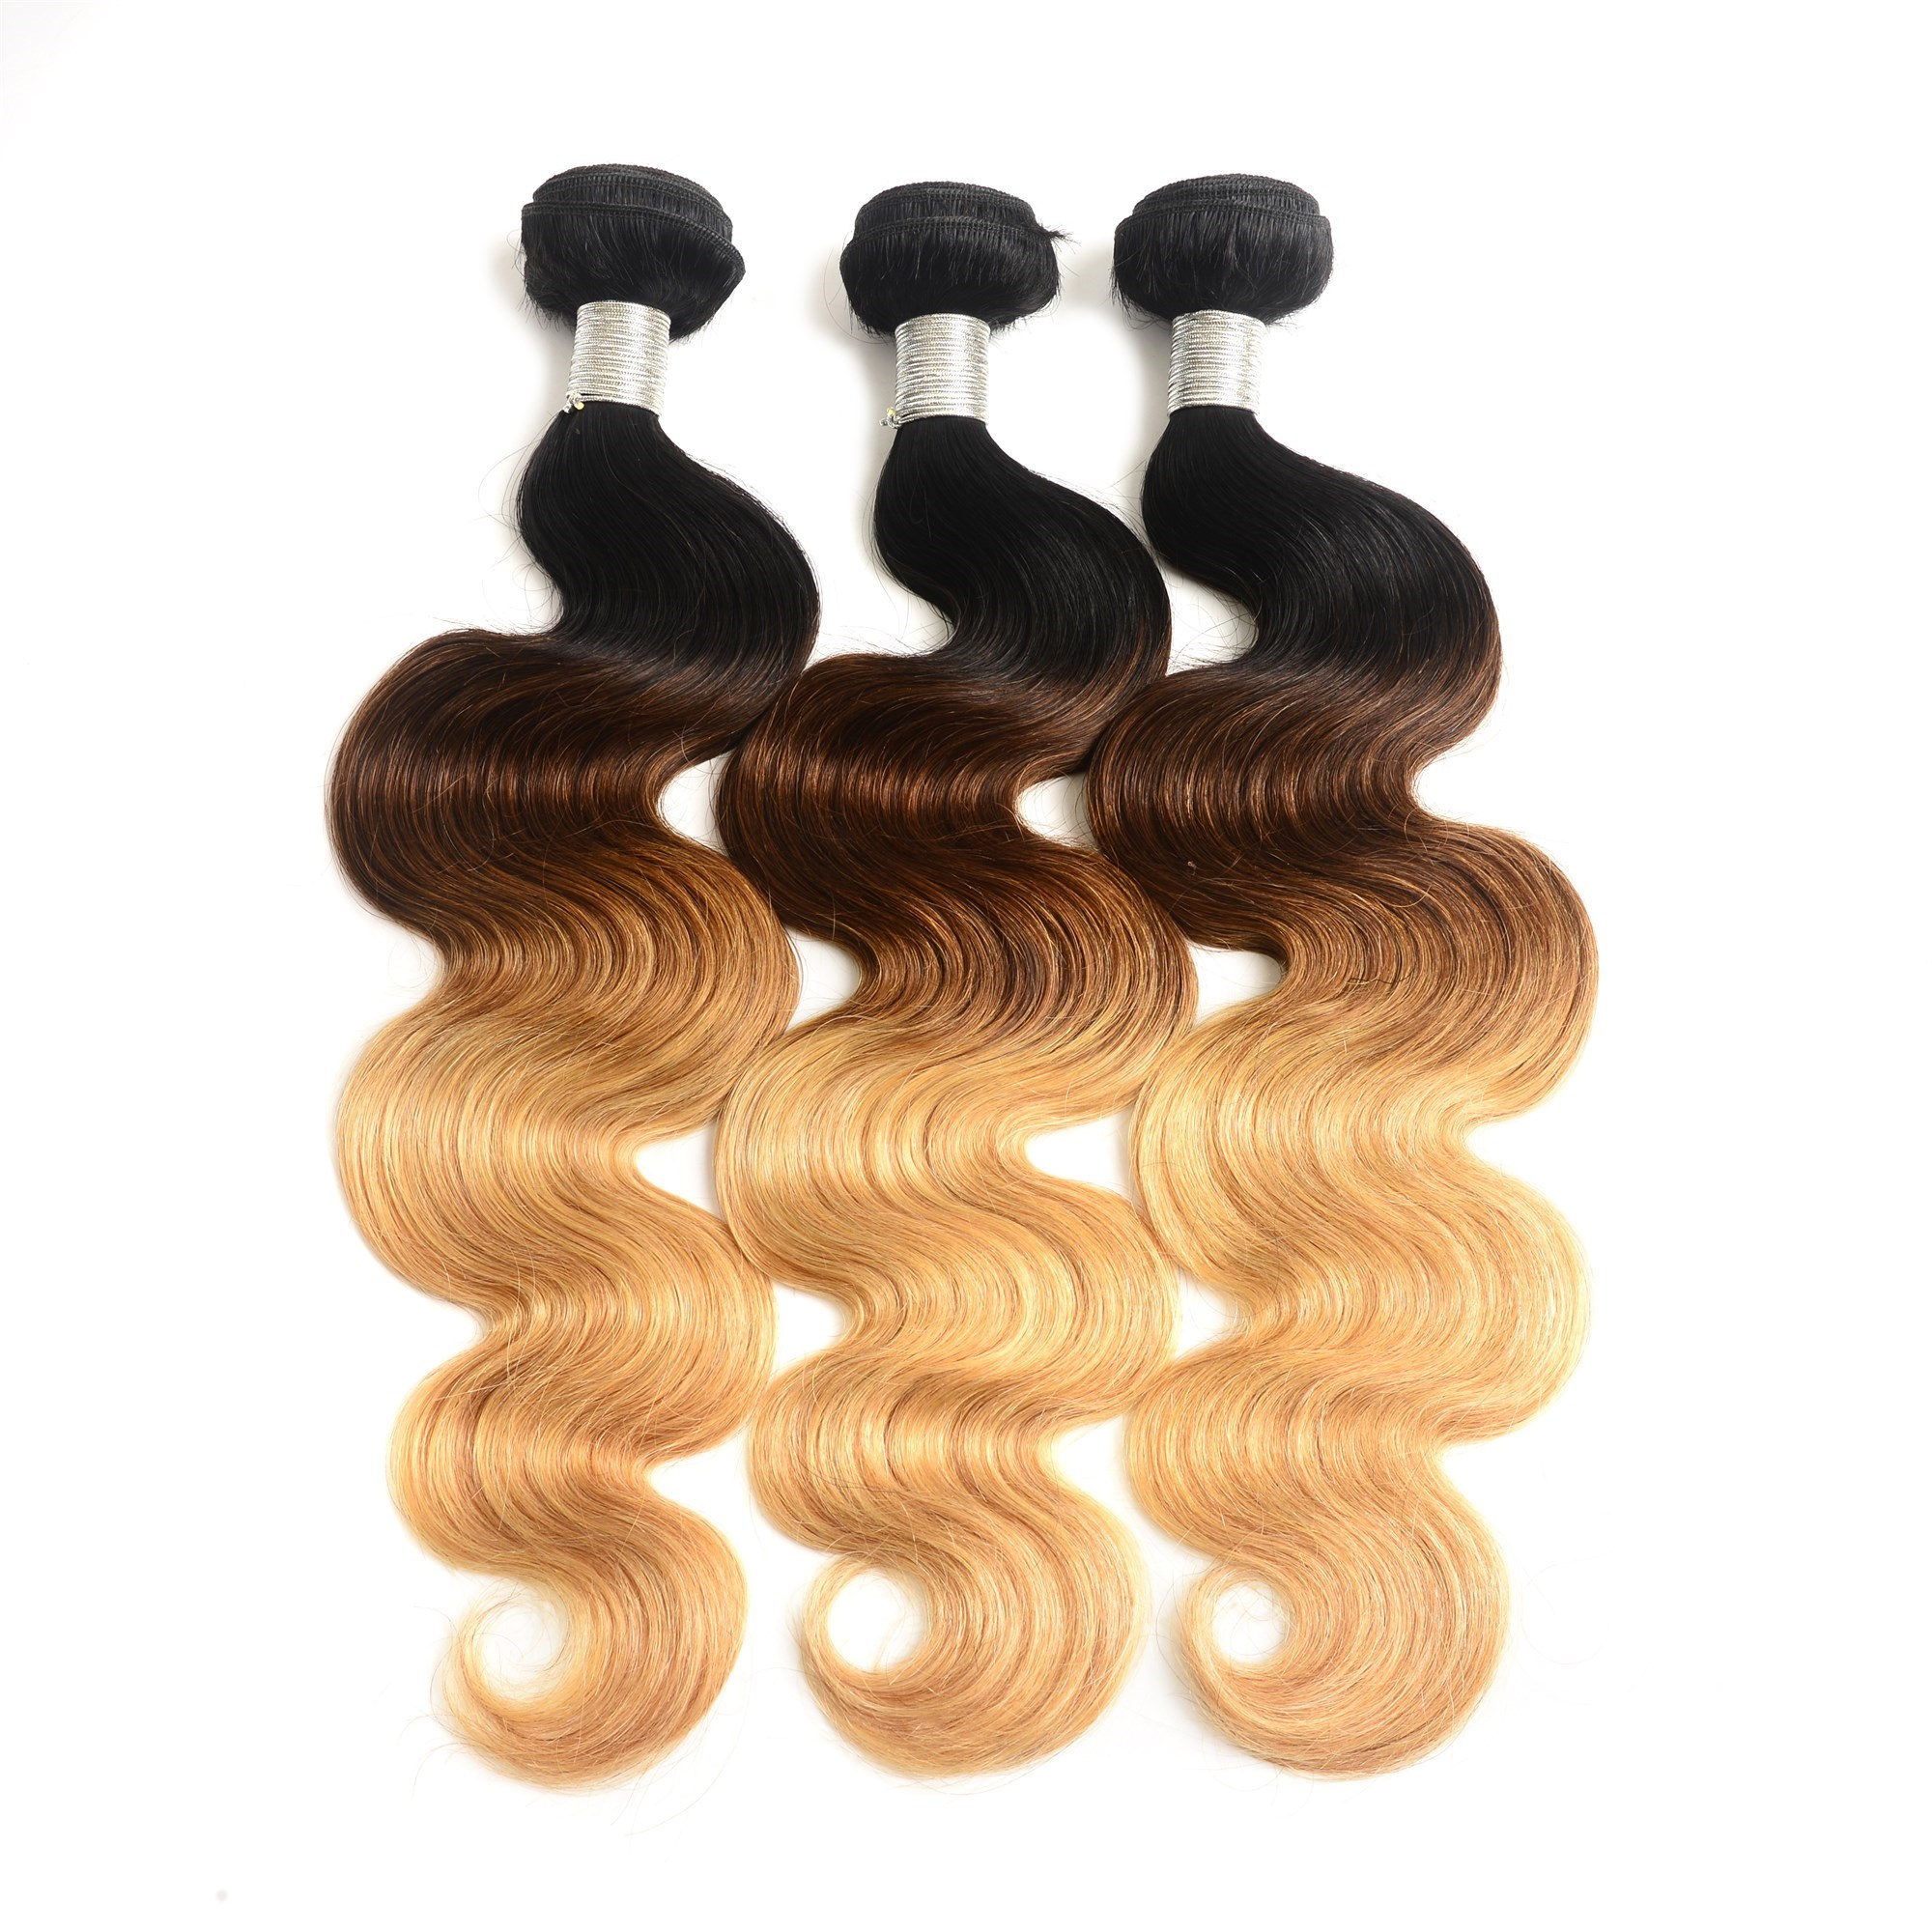 Remy Brazilian <strong>Body</strong> <strong>Wave</strong> <strong>Human</strong> <strong>Hair</strong> Waving 1B/4/27 <strong>Body</strong> <strong>Wave</strong> <strong>Human</strong> <strong>Hair</strong> Bundles With Closure